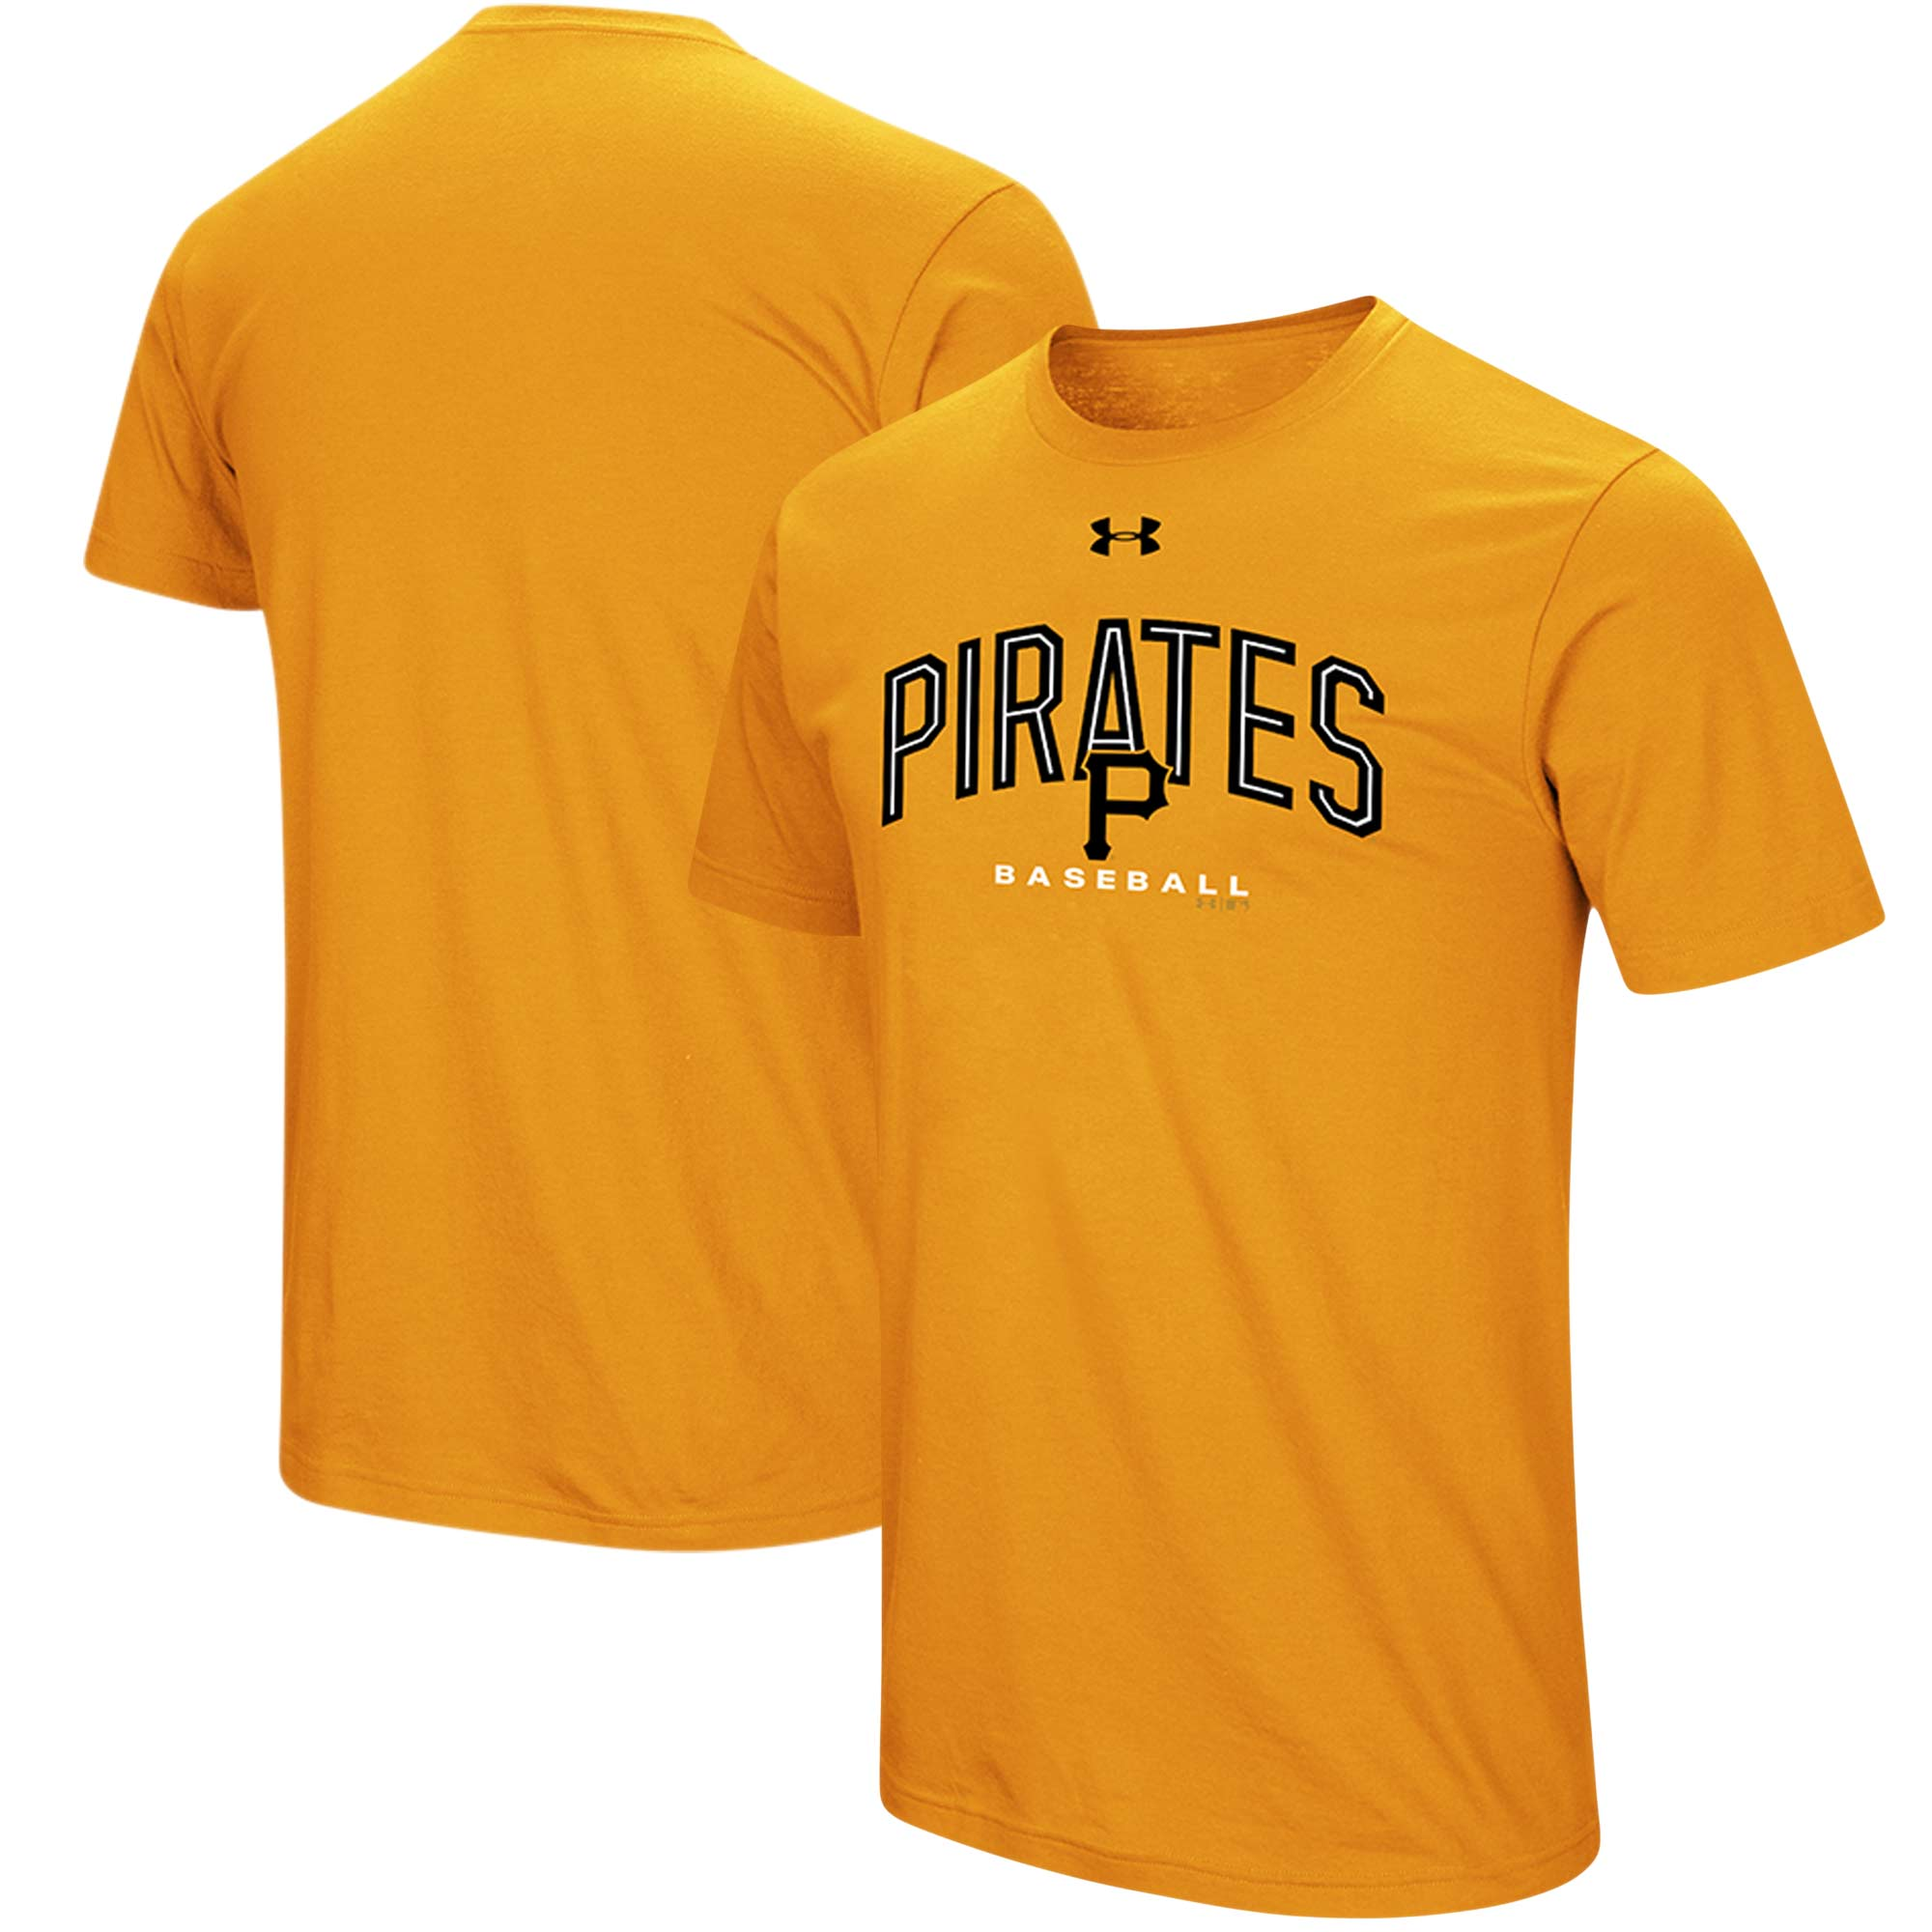 Pittsburgh Pirates Under Armour Performance Arch T-Shirt - Gold